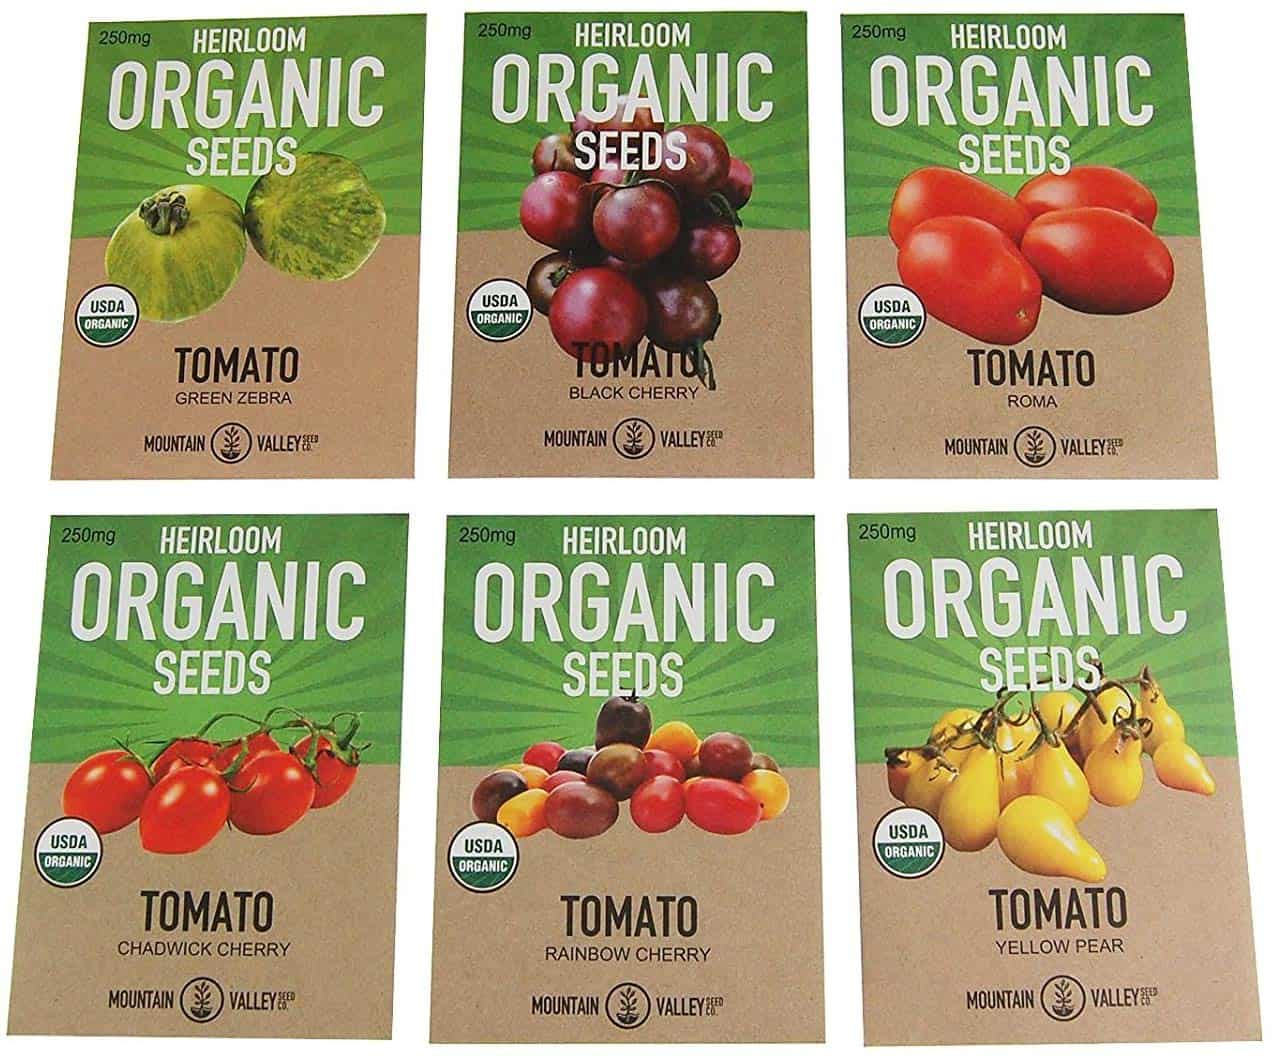 When To Plant Tomatoes: See The 7 Helpful Tips Here